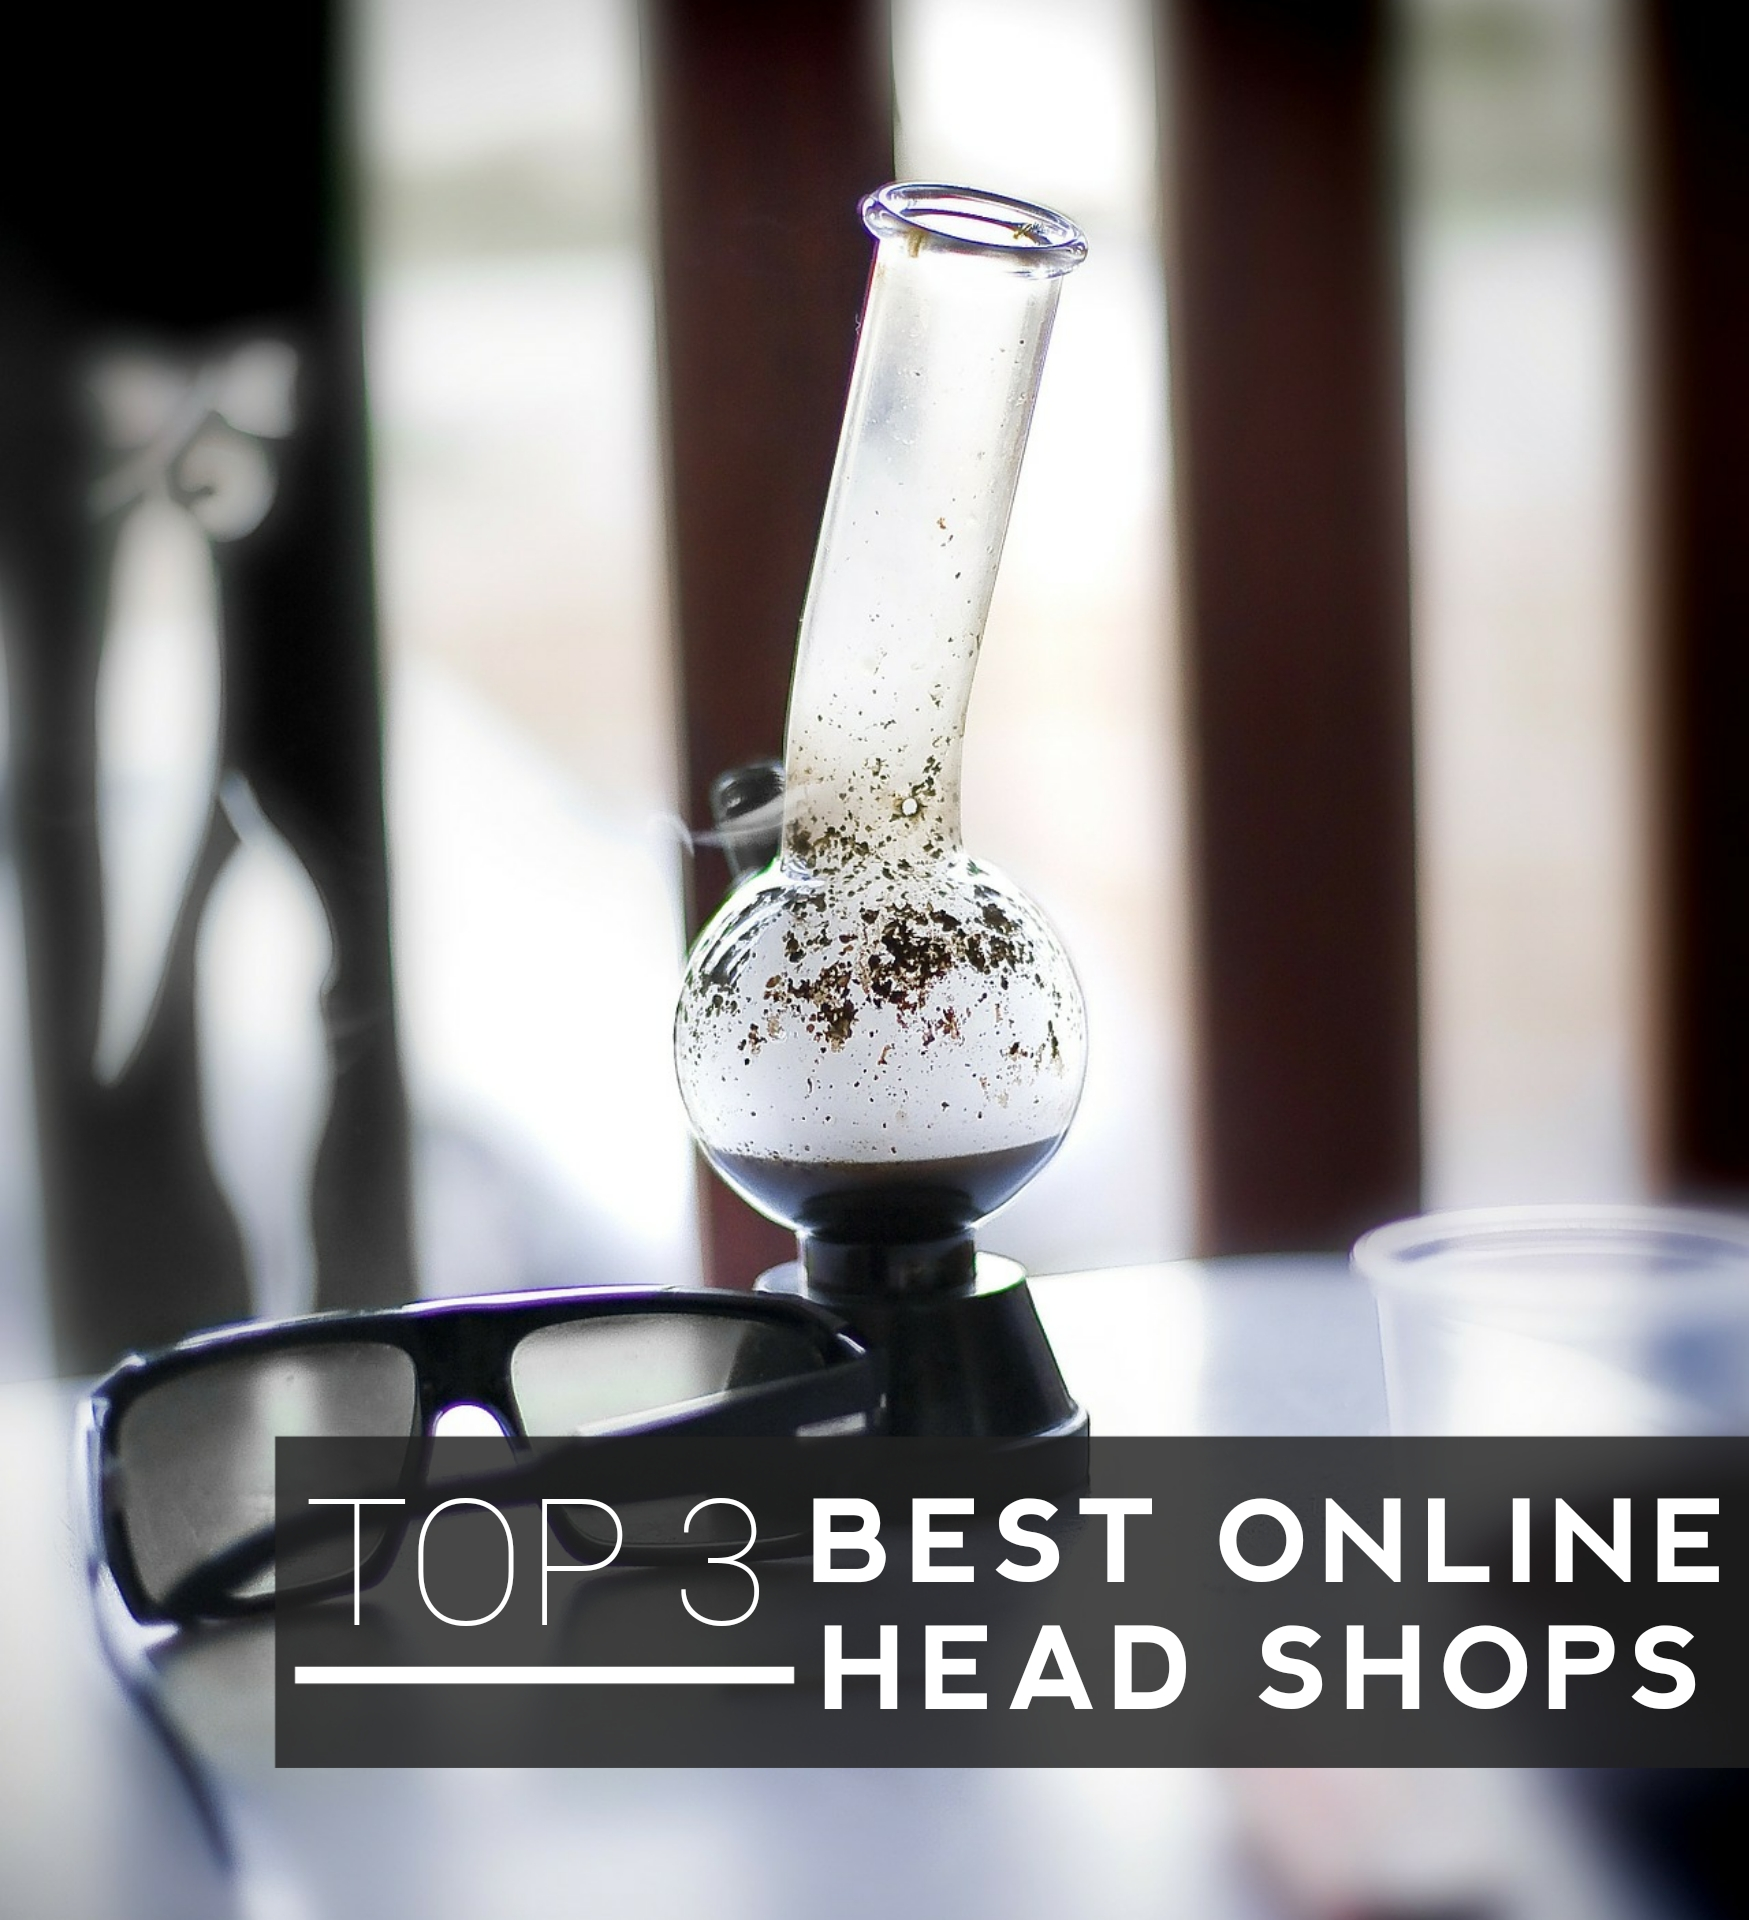 Top 5 Best Online Head Shops For 2018